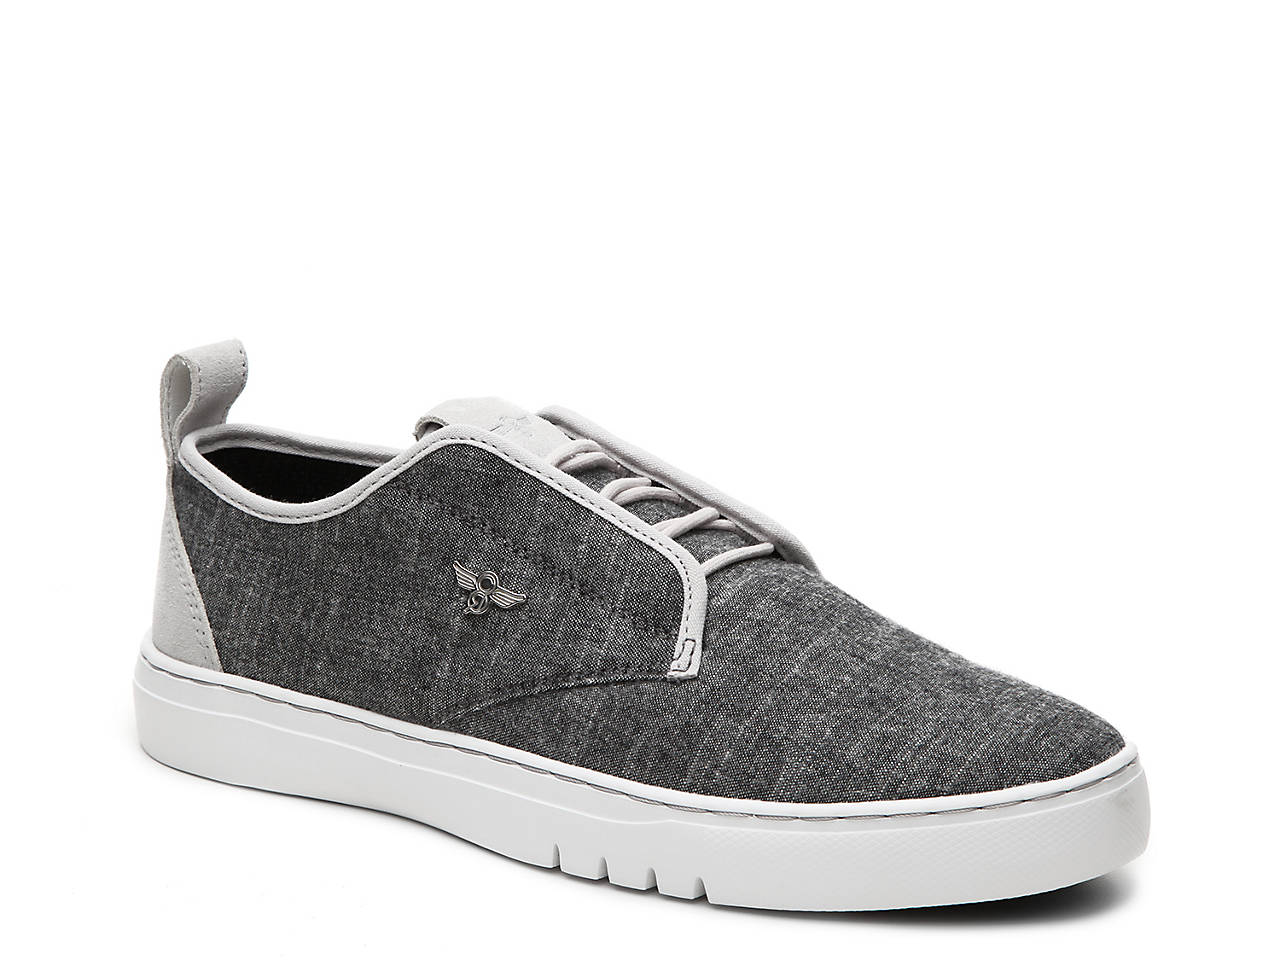 creative recreation lacava sneaker men s shoes dsw